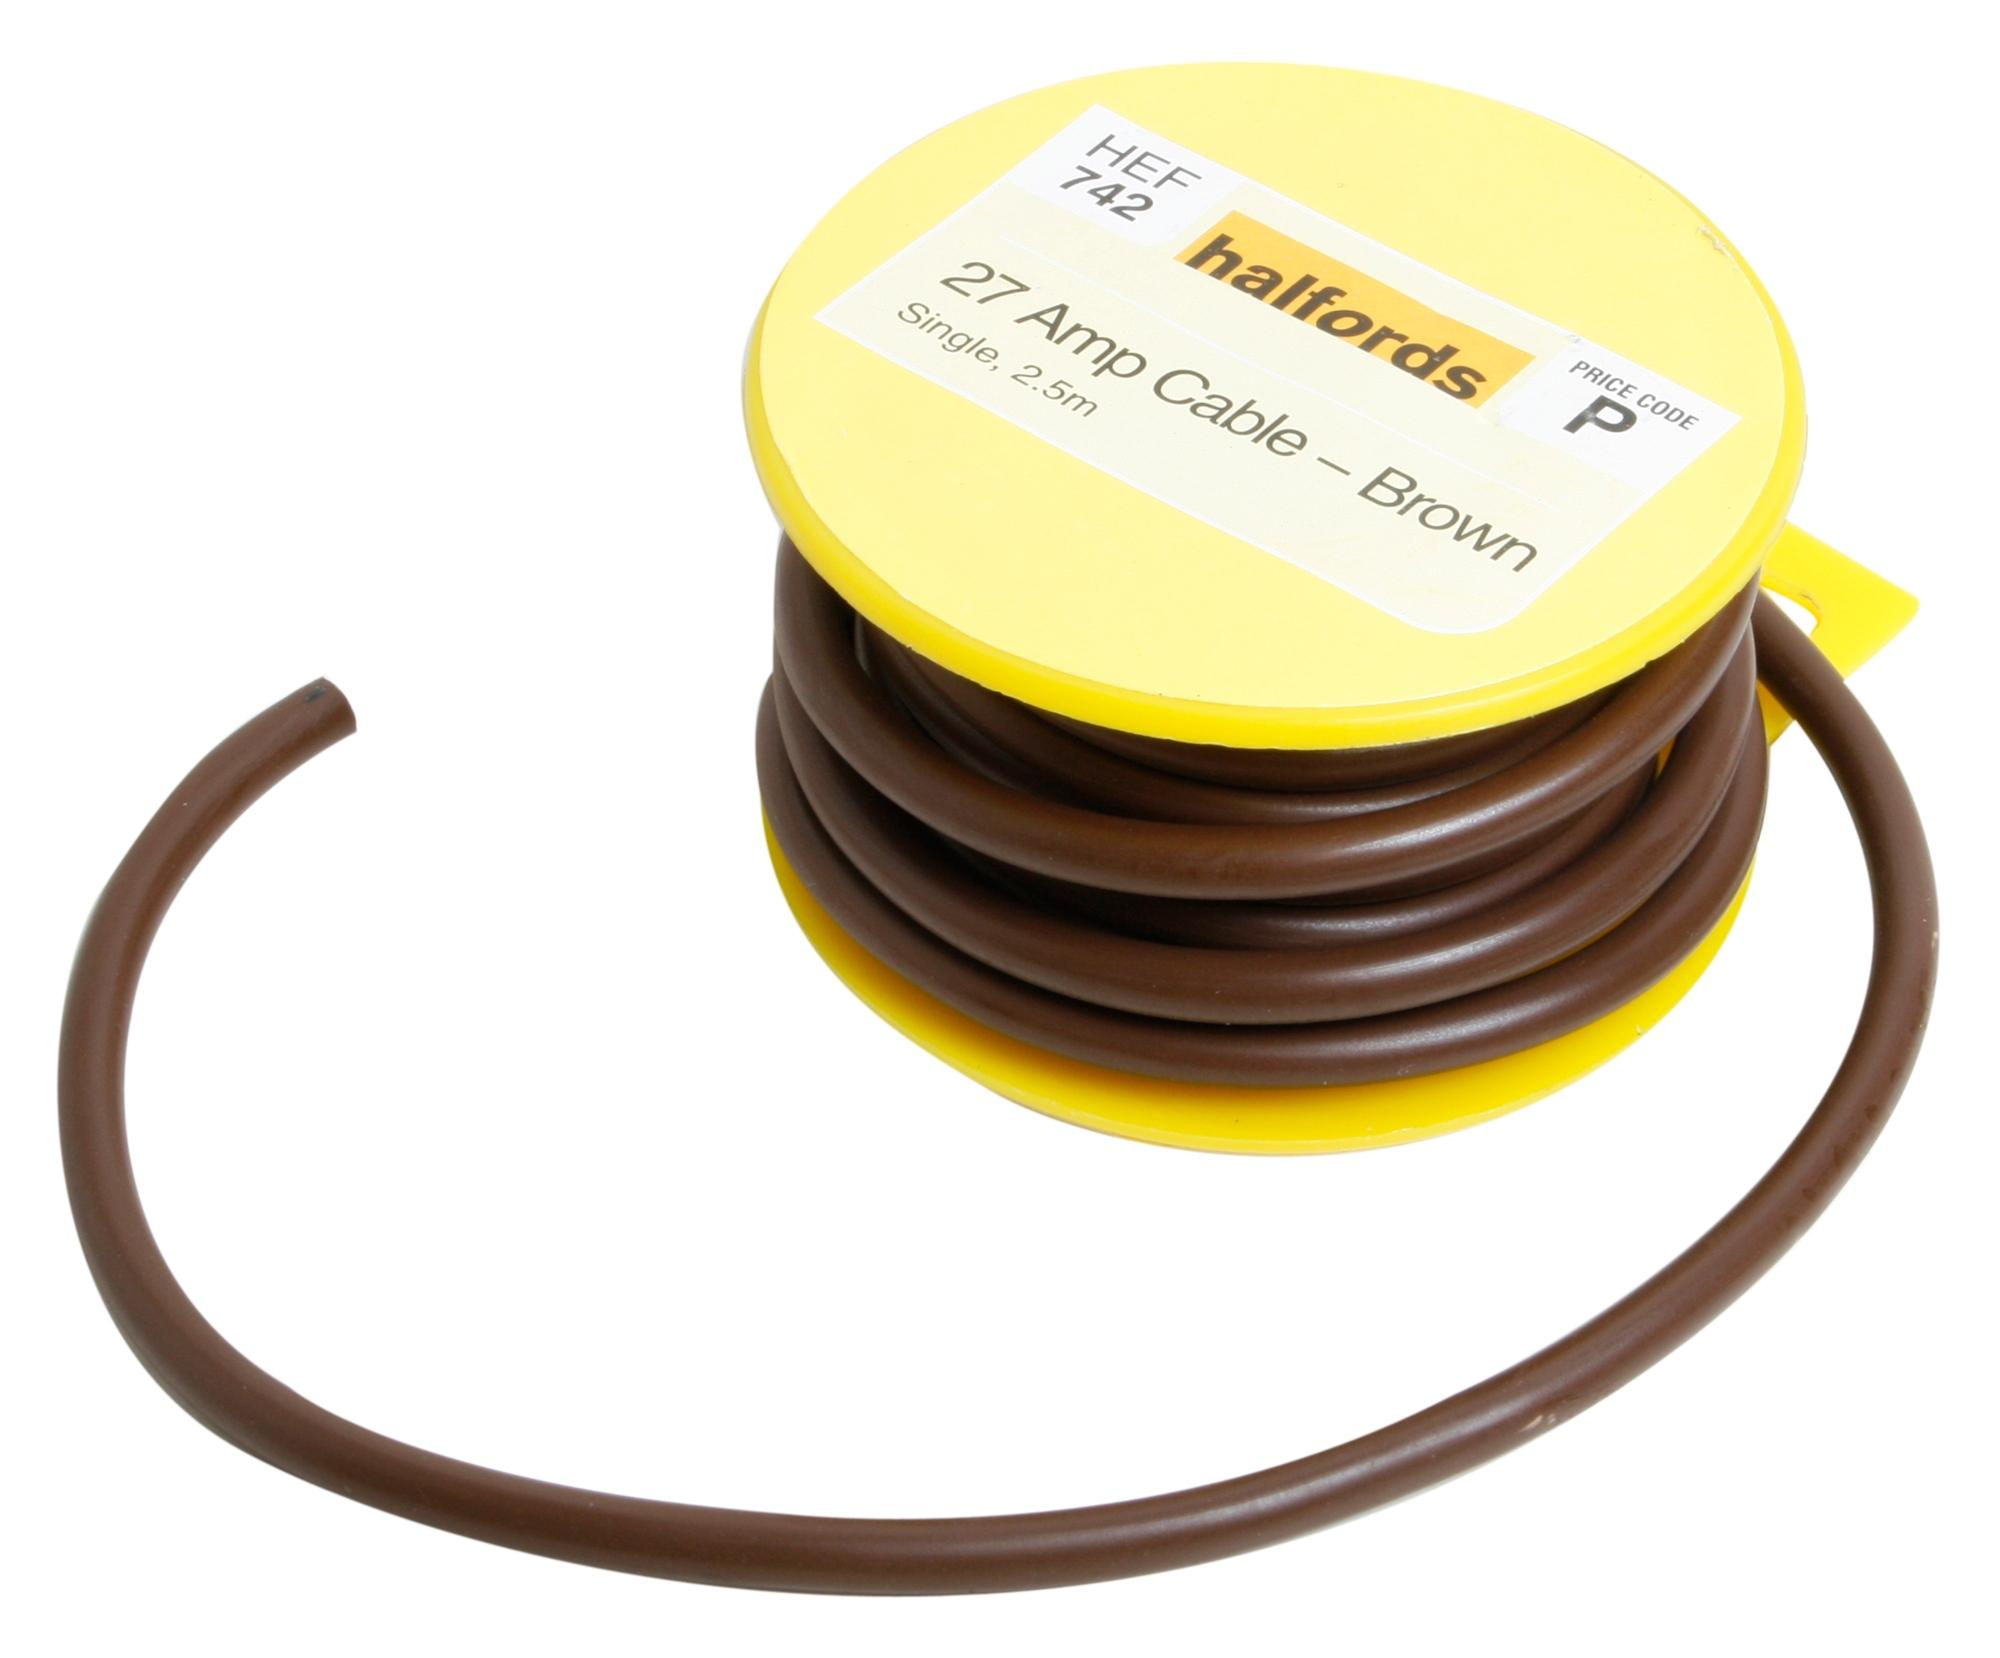 Halfords HEF742 Single Core Cable 27 Amp 12V Brown 2.5m Long 44 Copper  Strands